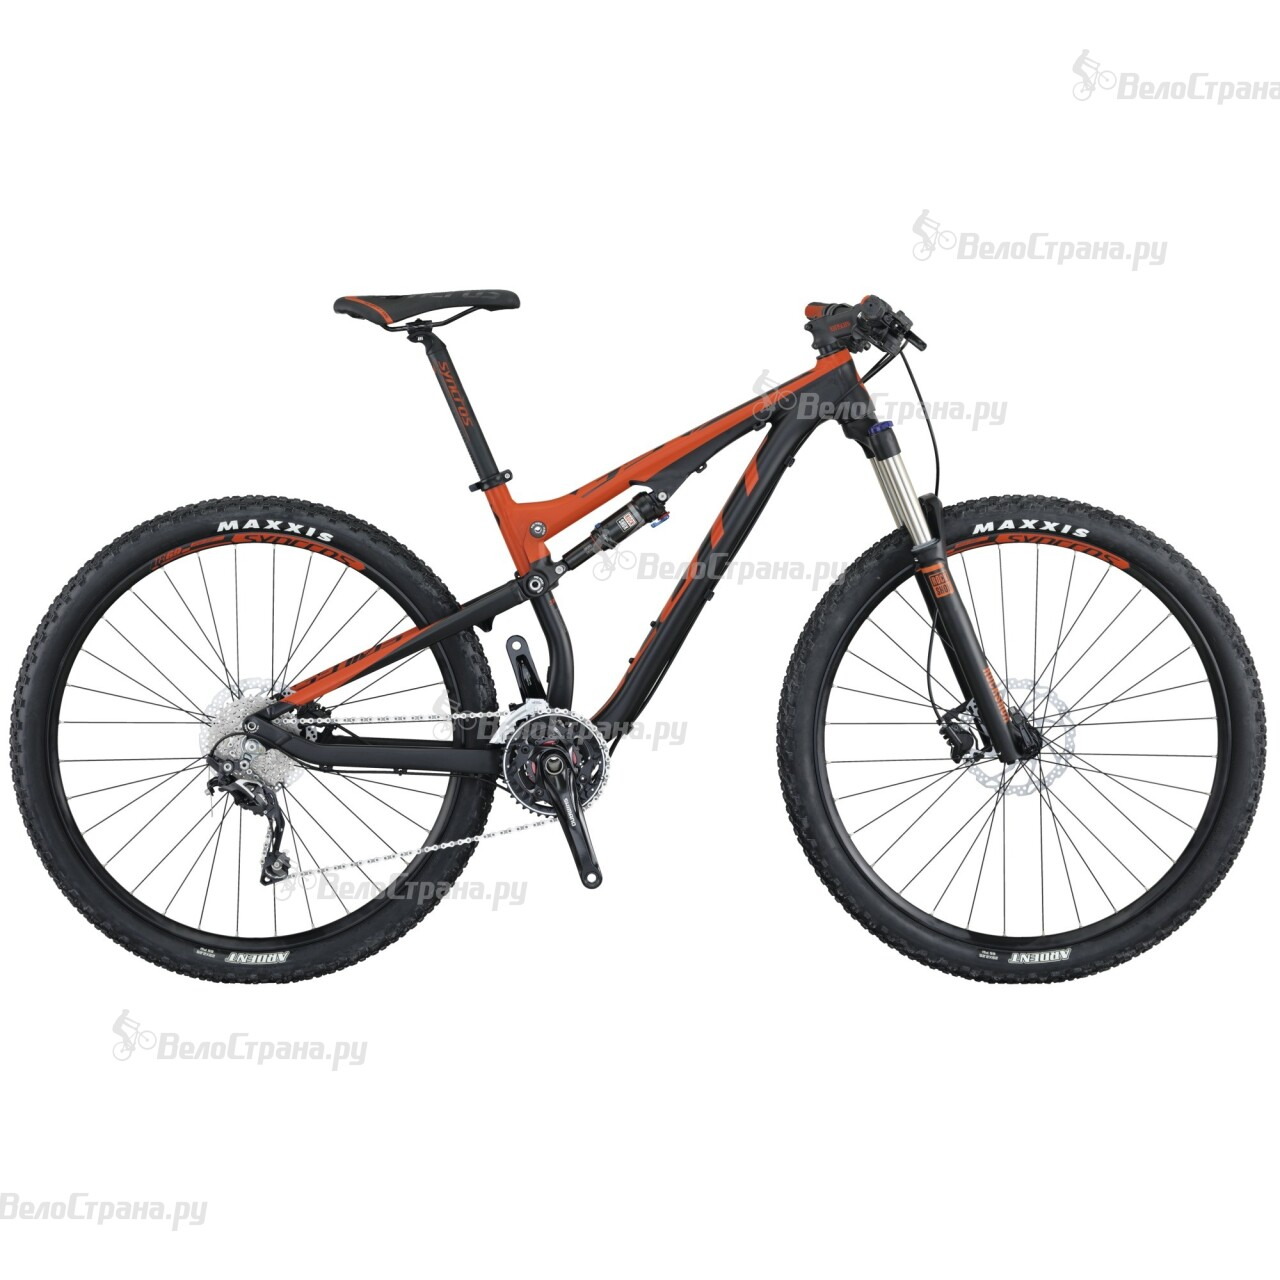 Велосипед Scott Genius 950 (2015) factory sell ce